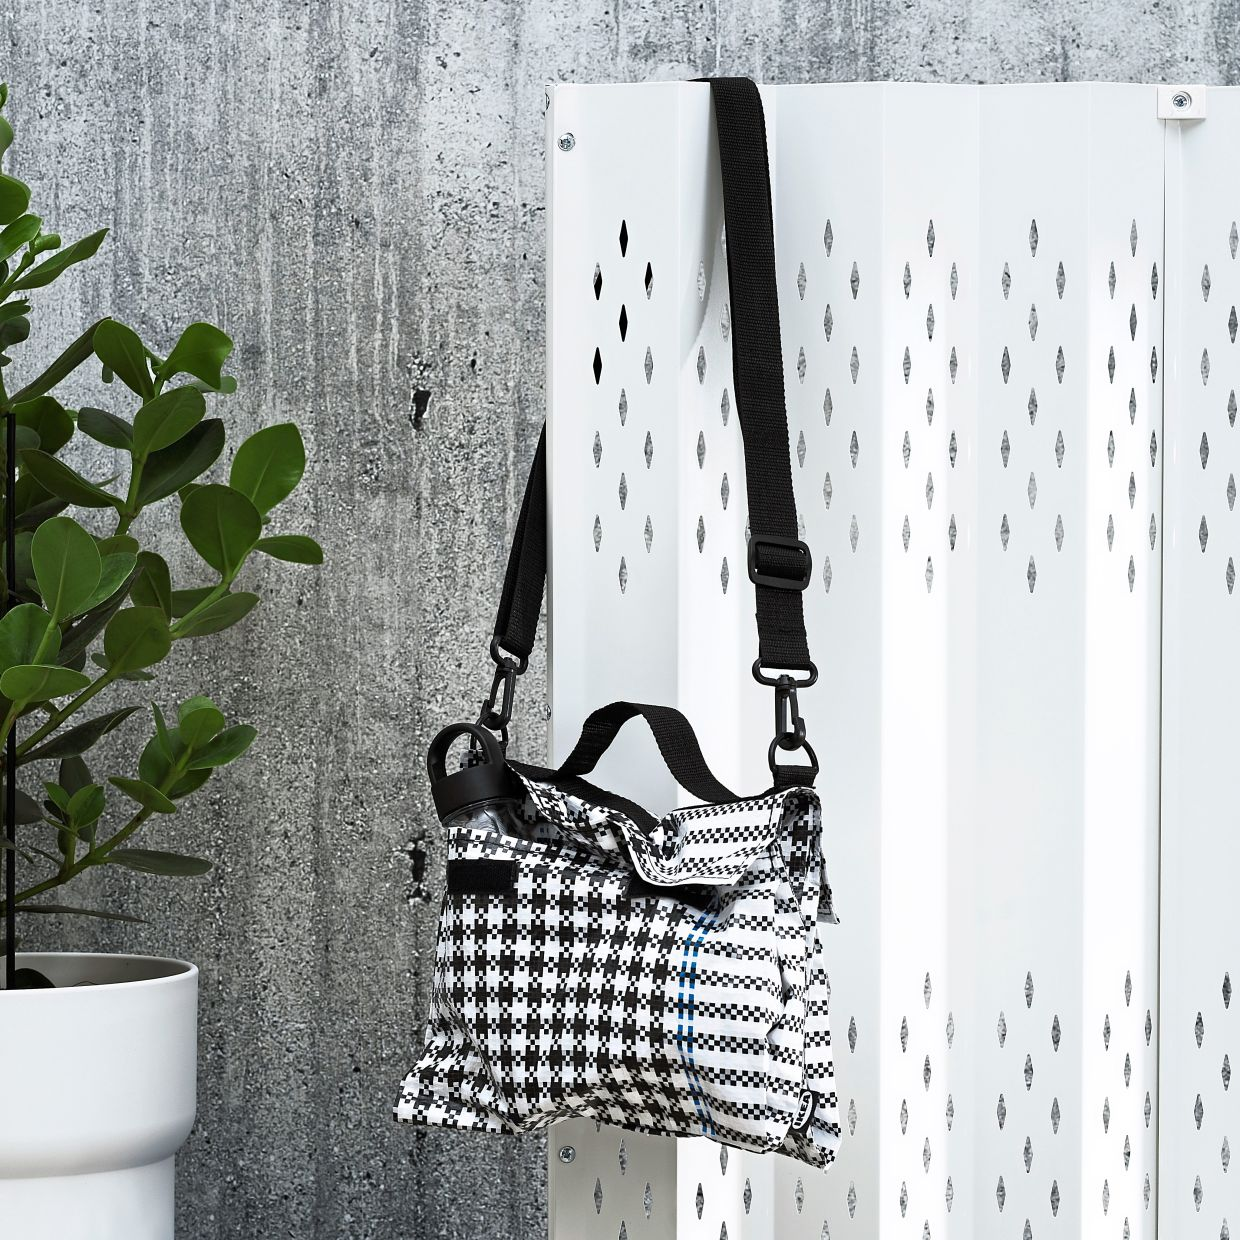 The houndstooth design that appears on this bag is one that's frequently found in traditional Thai weaving, but here it's made of modern materials.